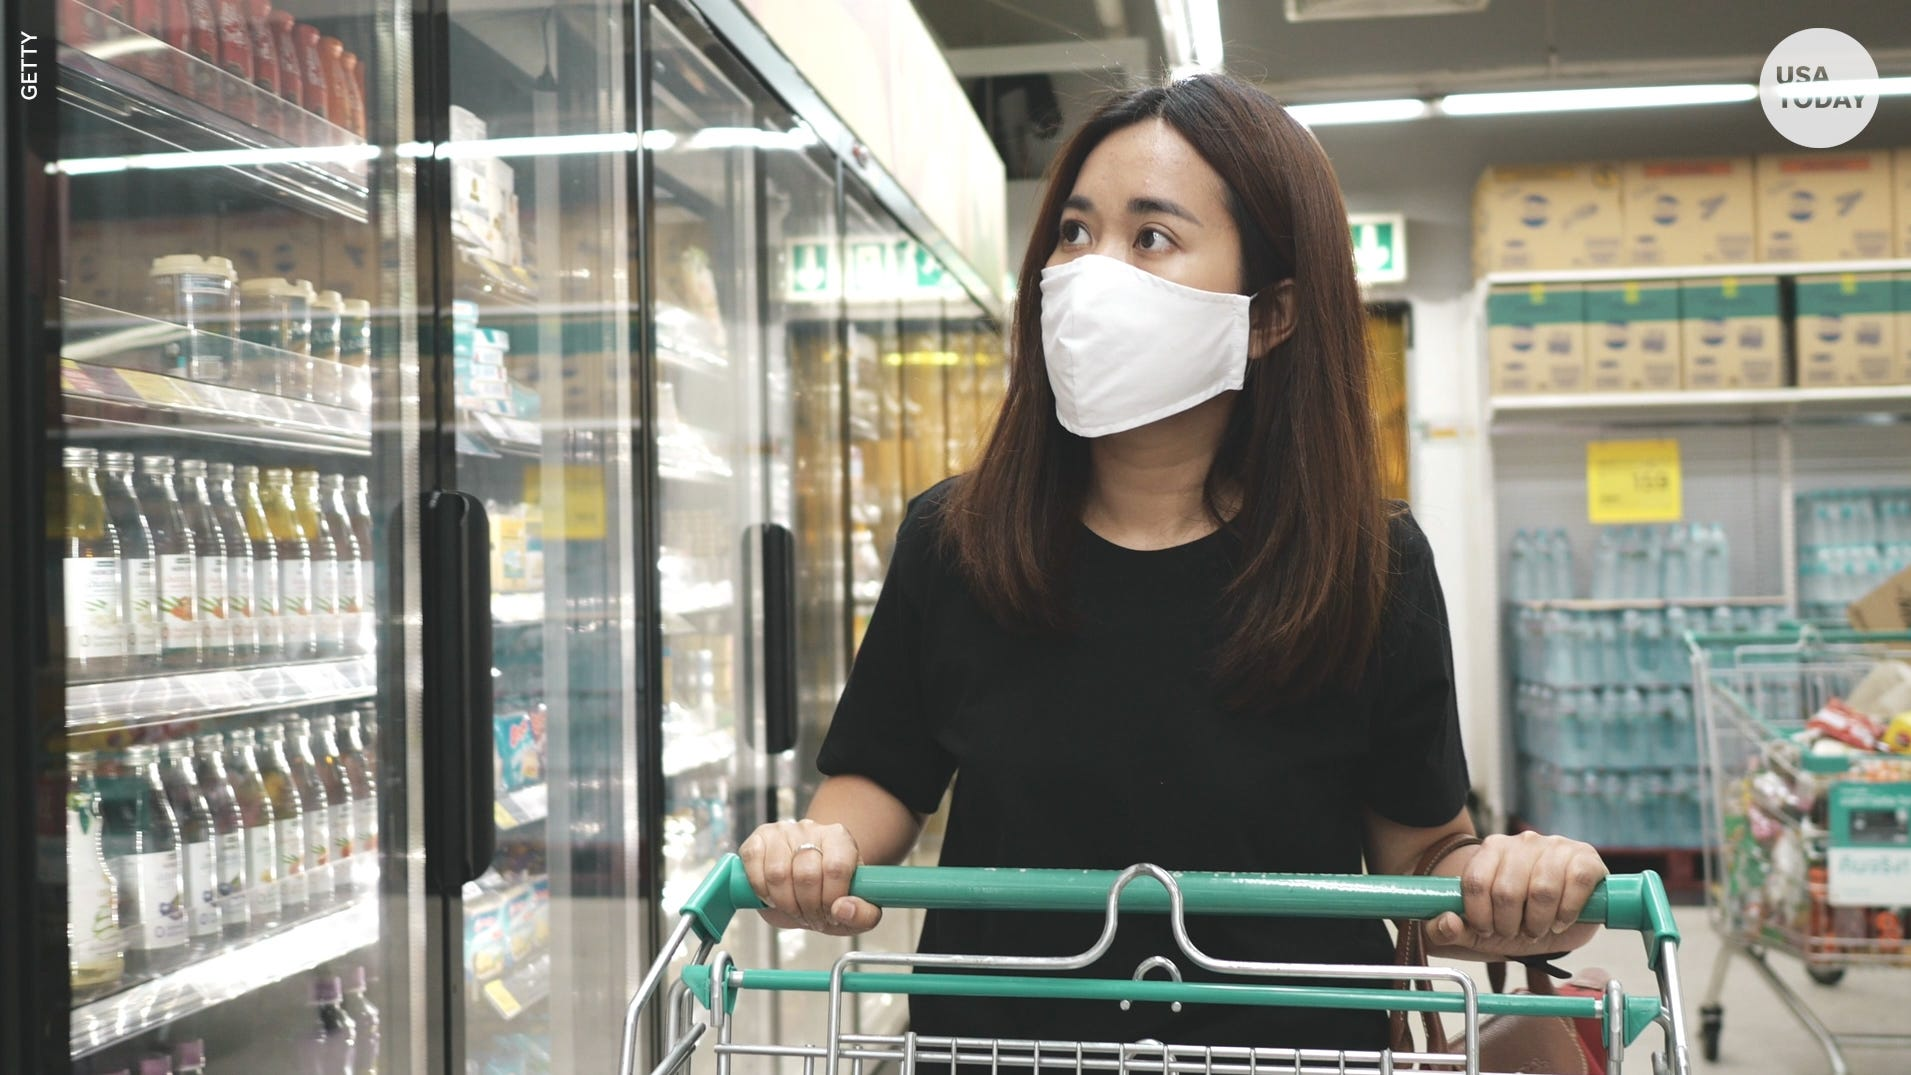 'New science is worrisome': CDC recommends wearing masks indoors, again. What that means for vaccinated Americans.